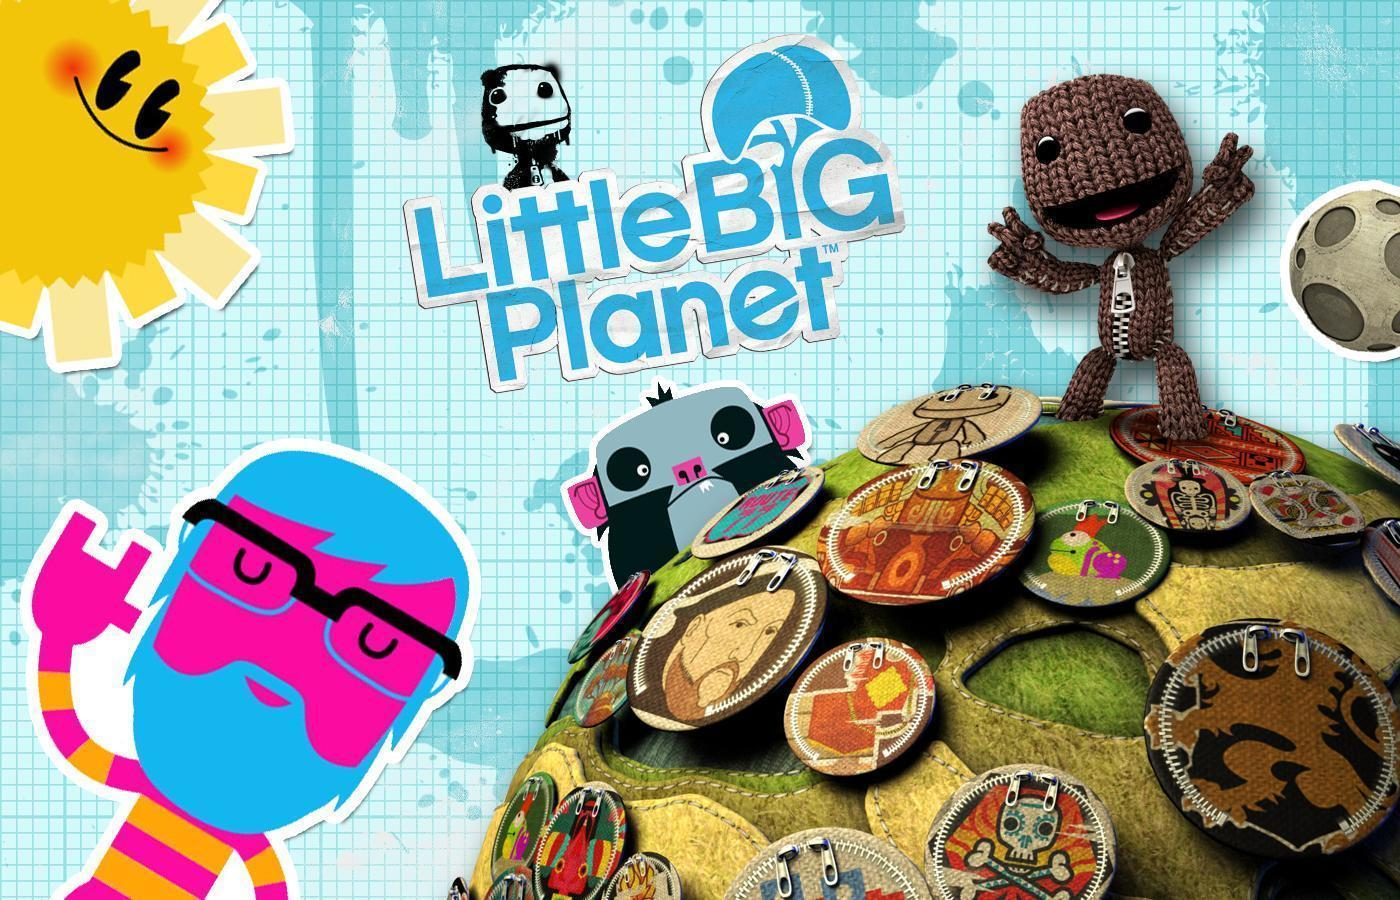 Little Big Planet Wallpaper: Wallpaper Cave